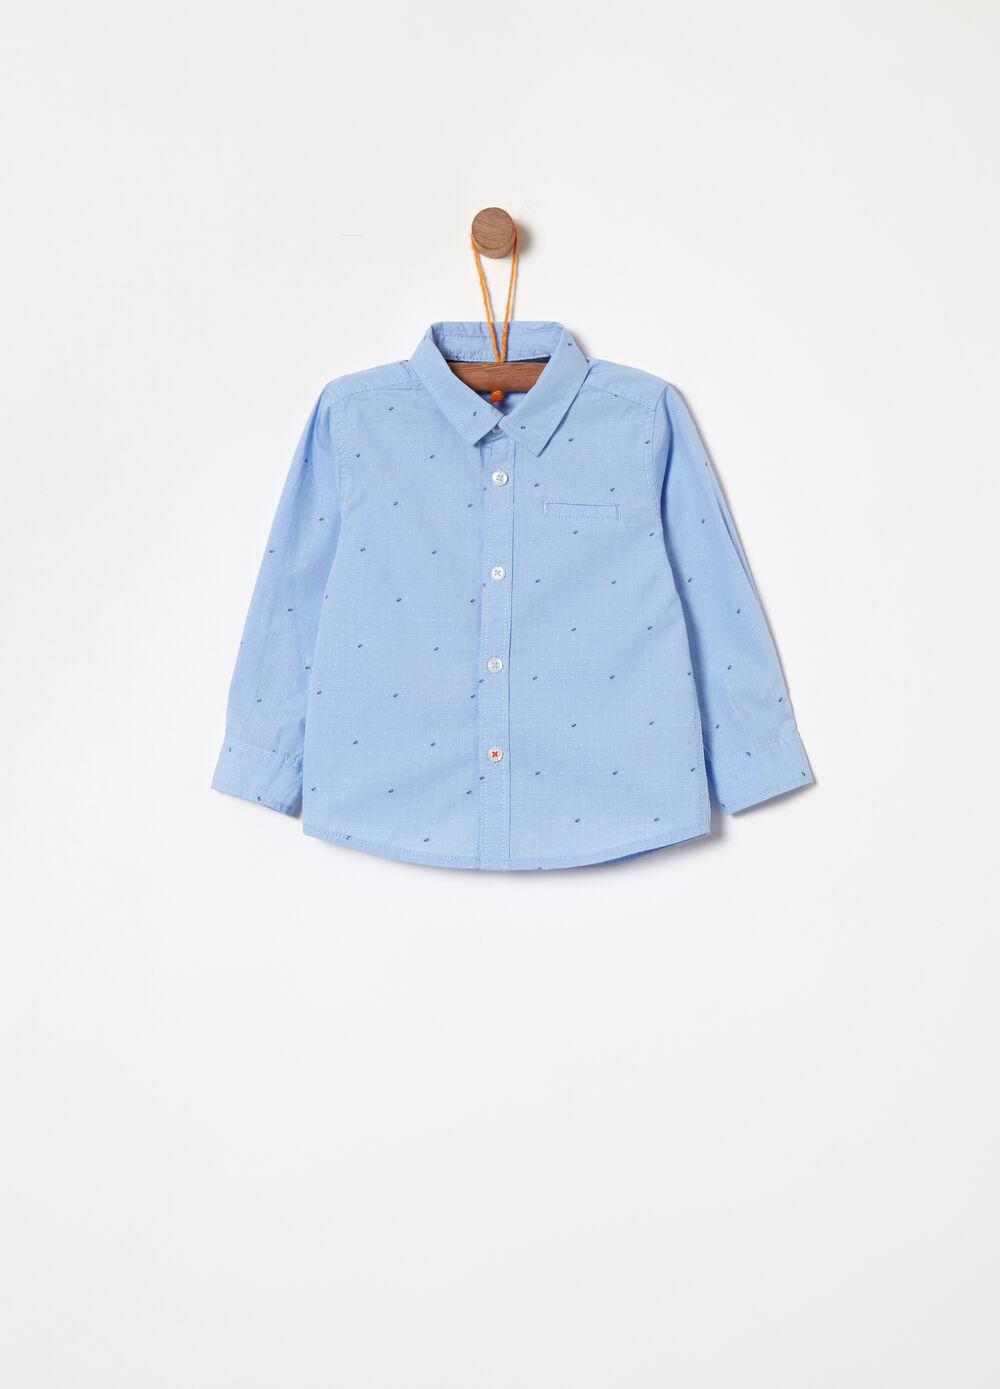 Cotton shirt with micro polka dot pocket